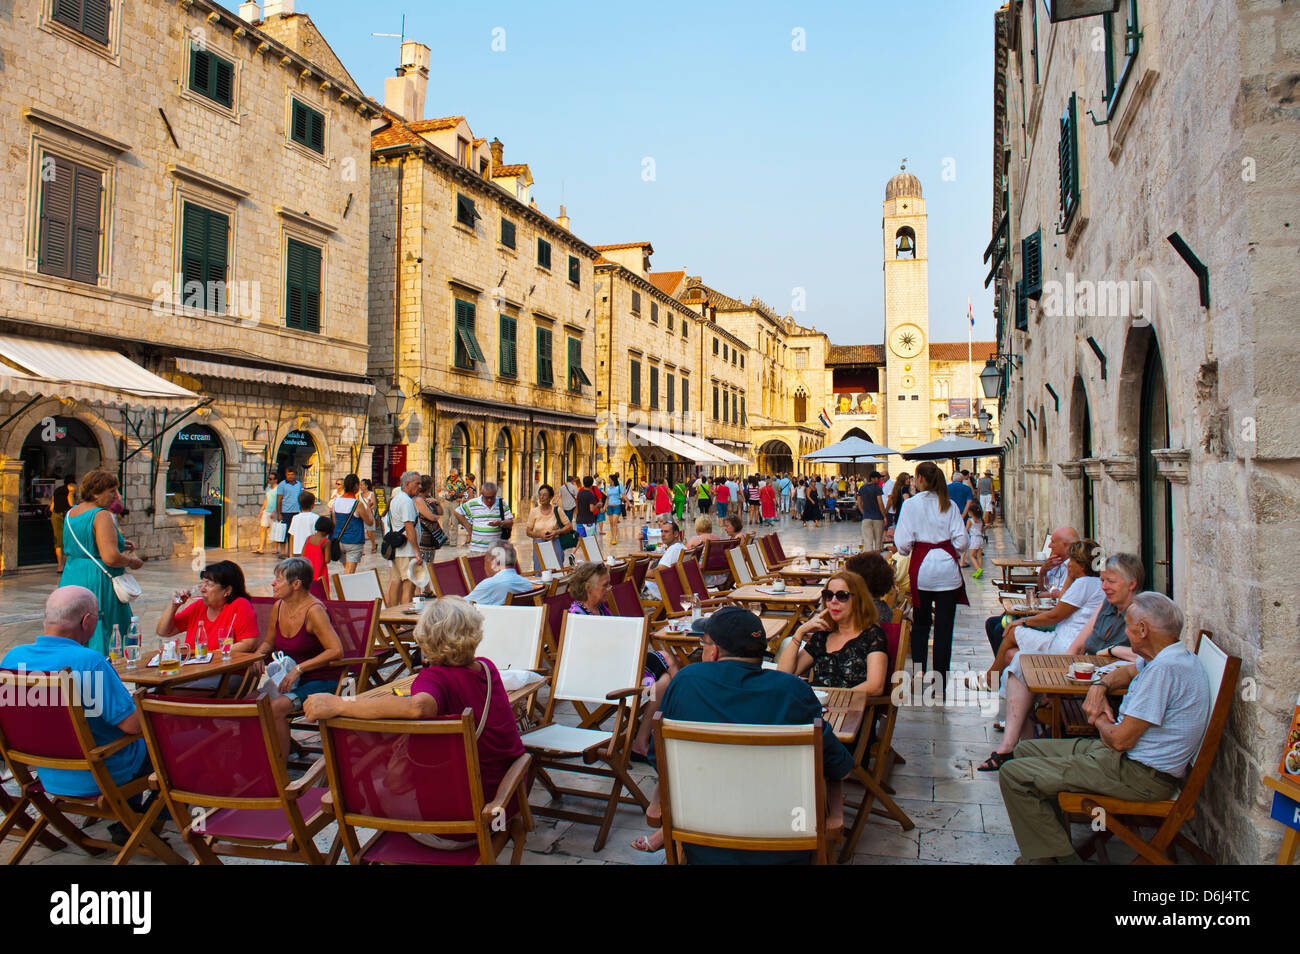 Stradun, the famous street in Dubrovnik, by the City Bell Tower, Old Town, UNESCO Site, Dubrovnik, Dalmatia, Croatia - Stock Image